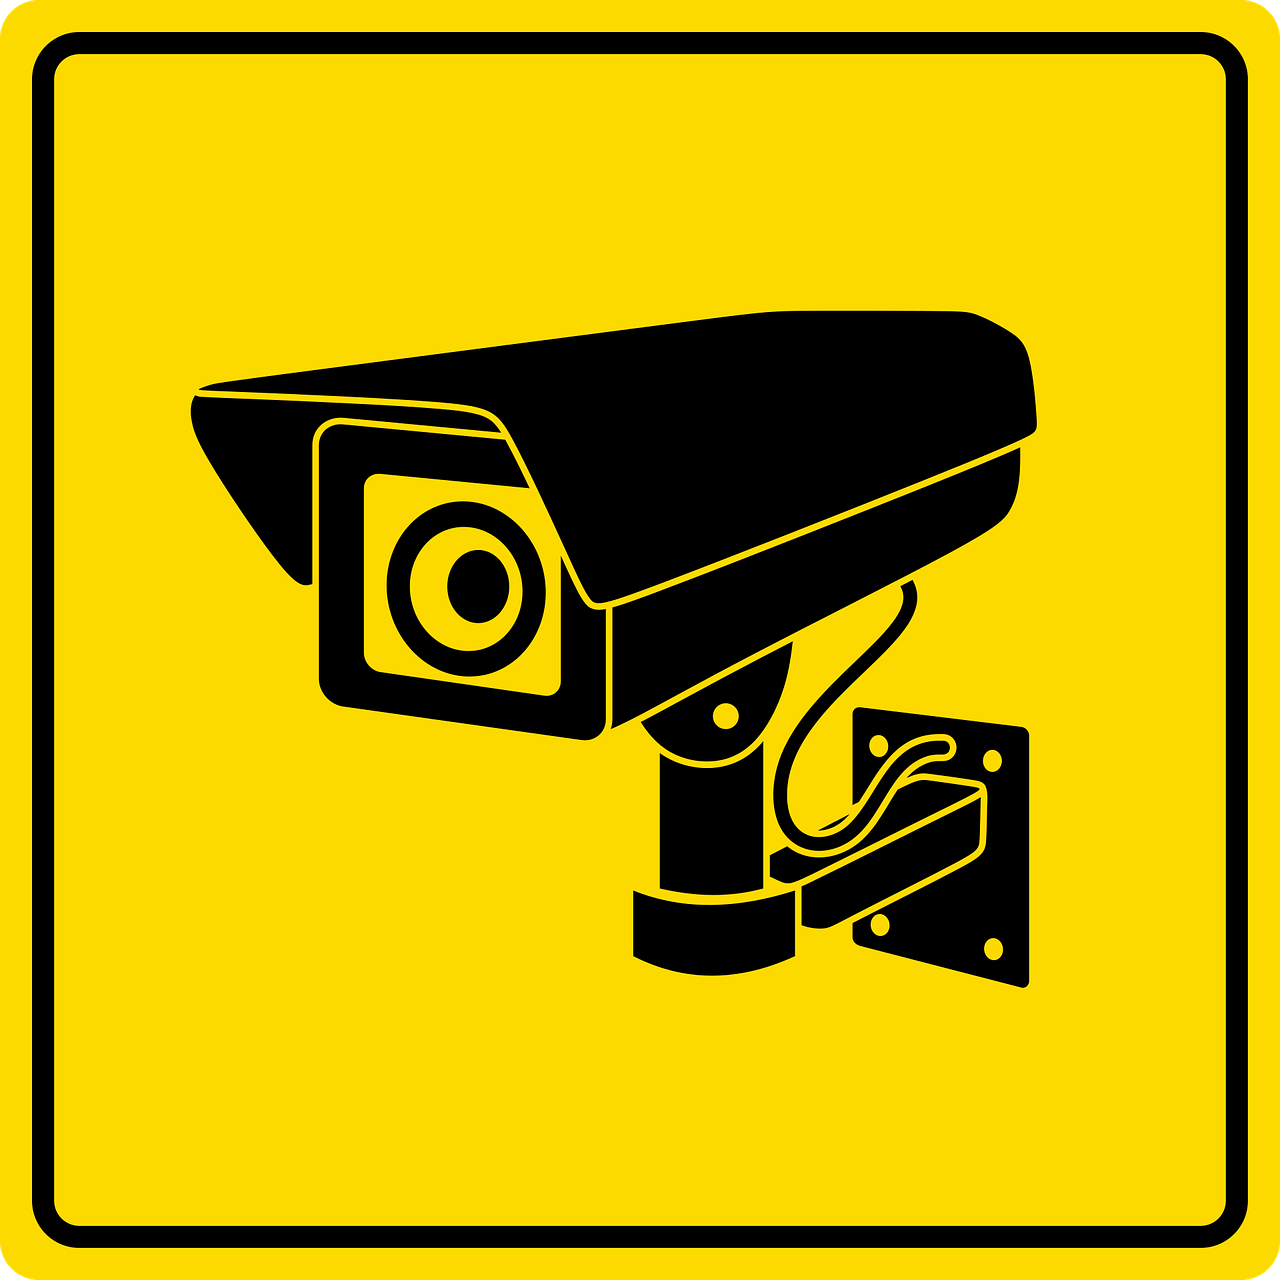 Cctv, Security